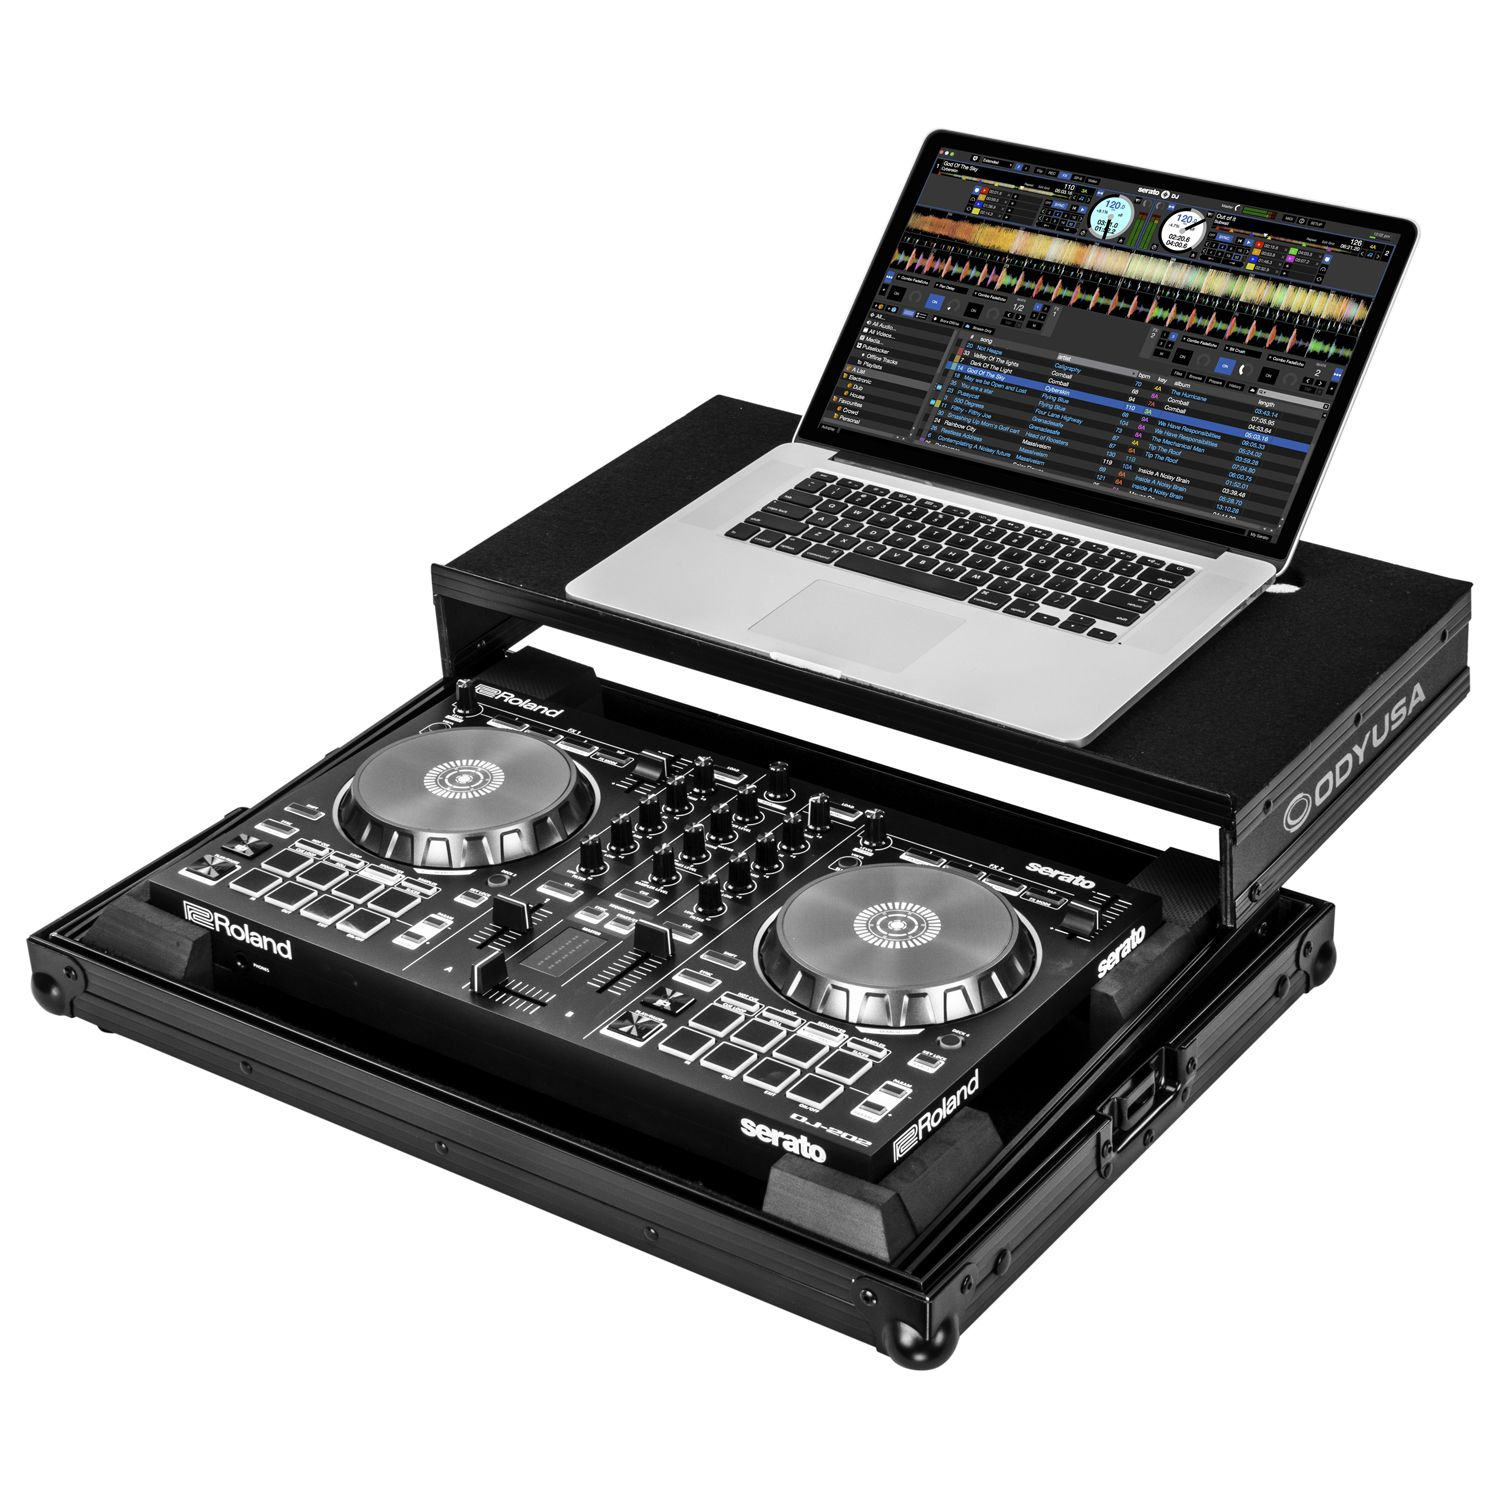 Black Roland DJ-202 Case with Laptop Glide Platform